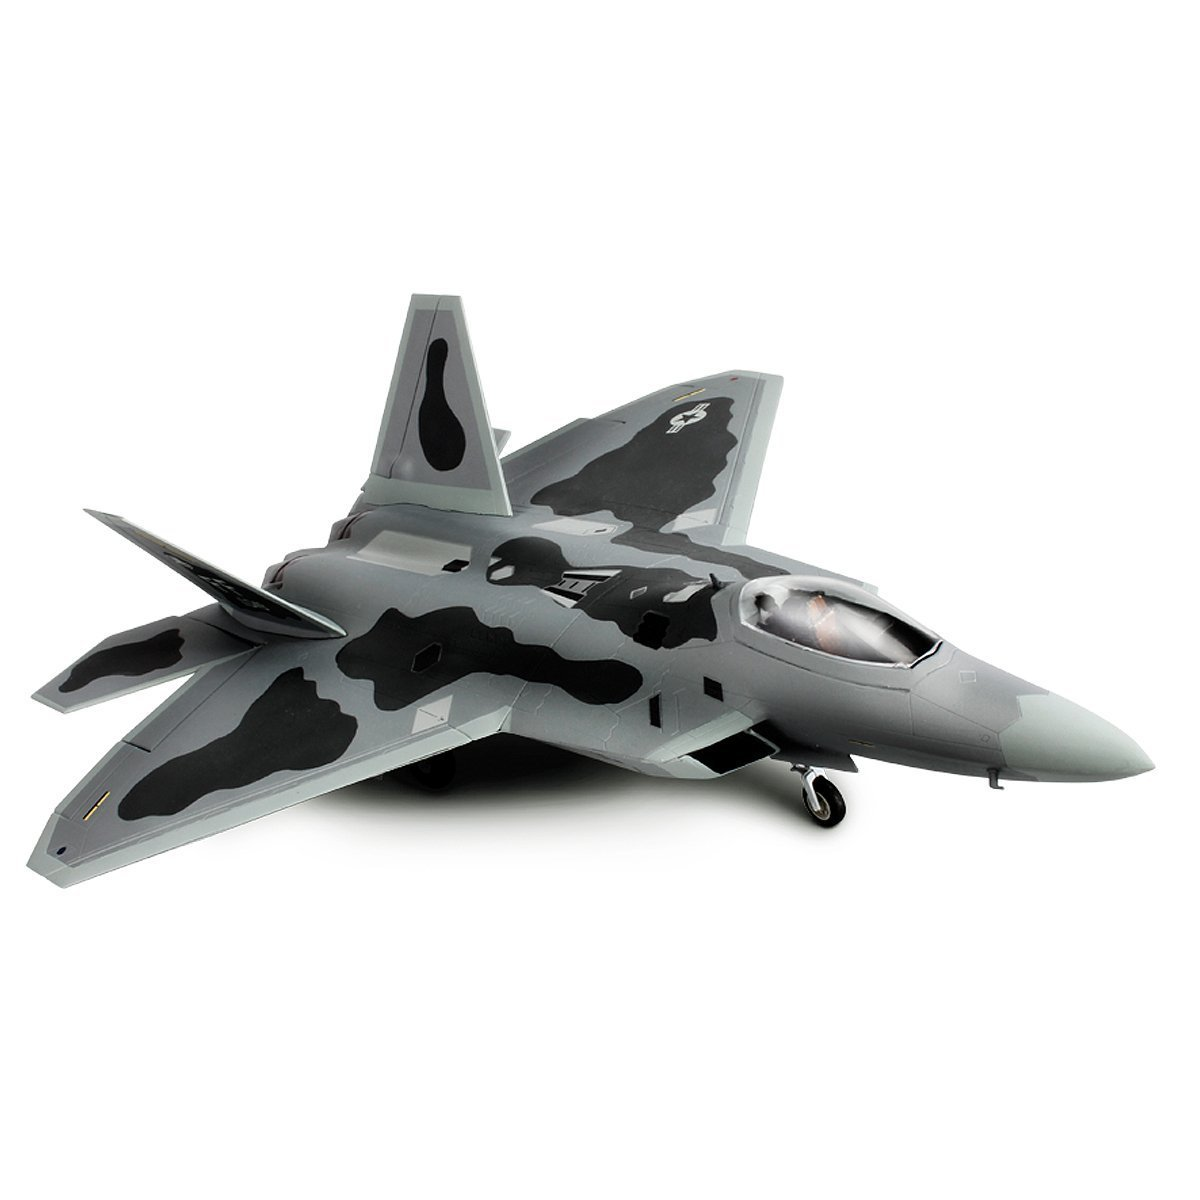 Forces of Valor U.S. F-22 Raptor - Langley Air Force Base, 2006, Scale 1:72 [並行輸入品] B018TMGD92